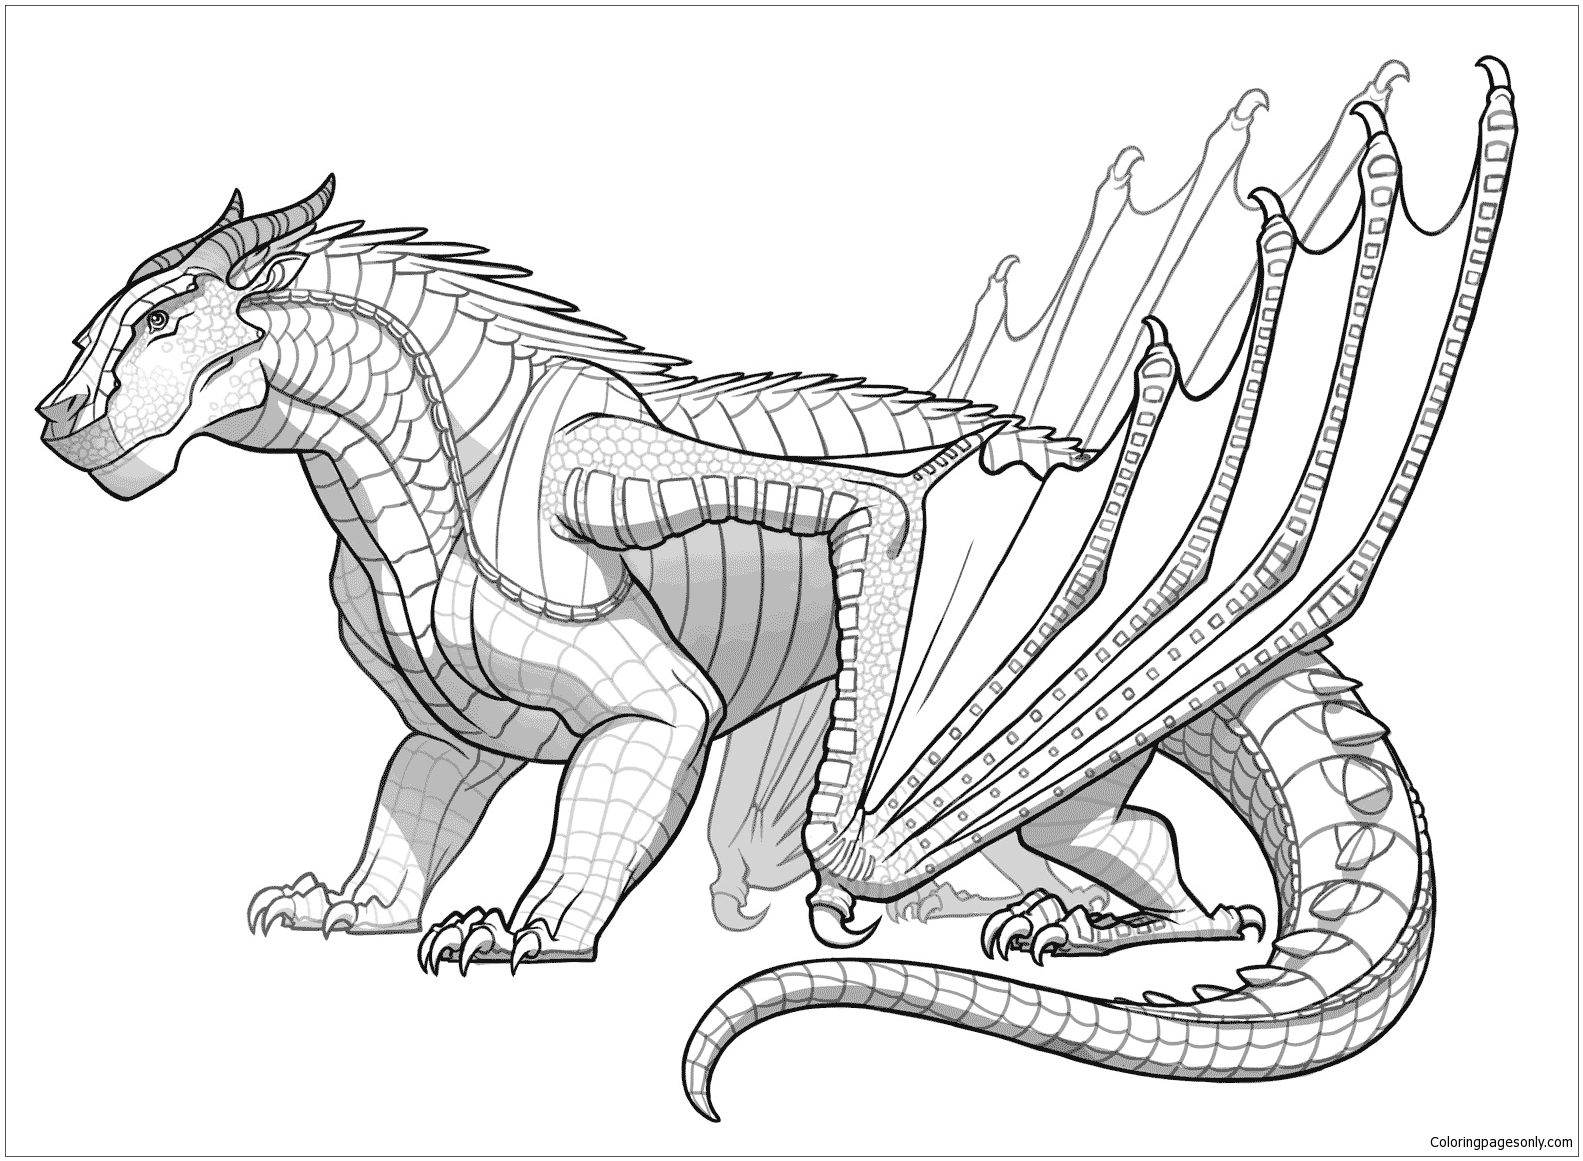 Awesome Mudwing Dragon Coloring Page - Free Coloring Pages Online